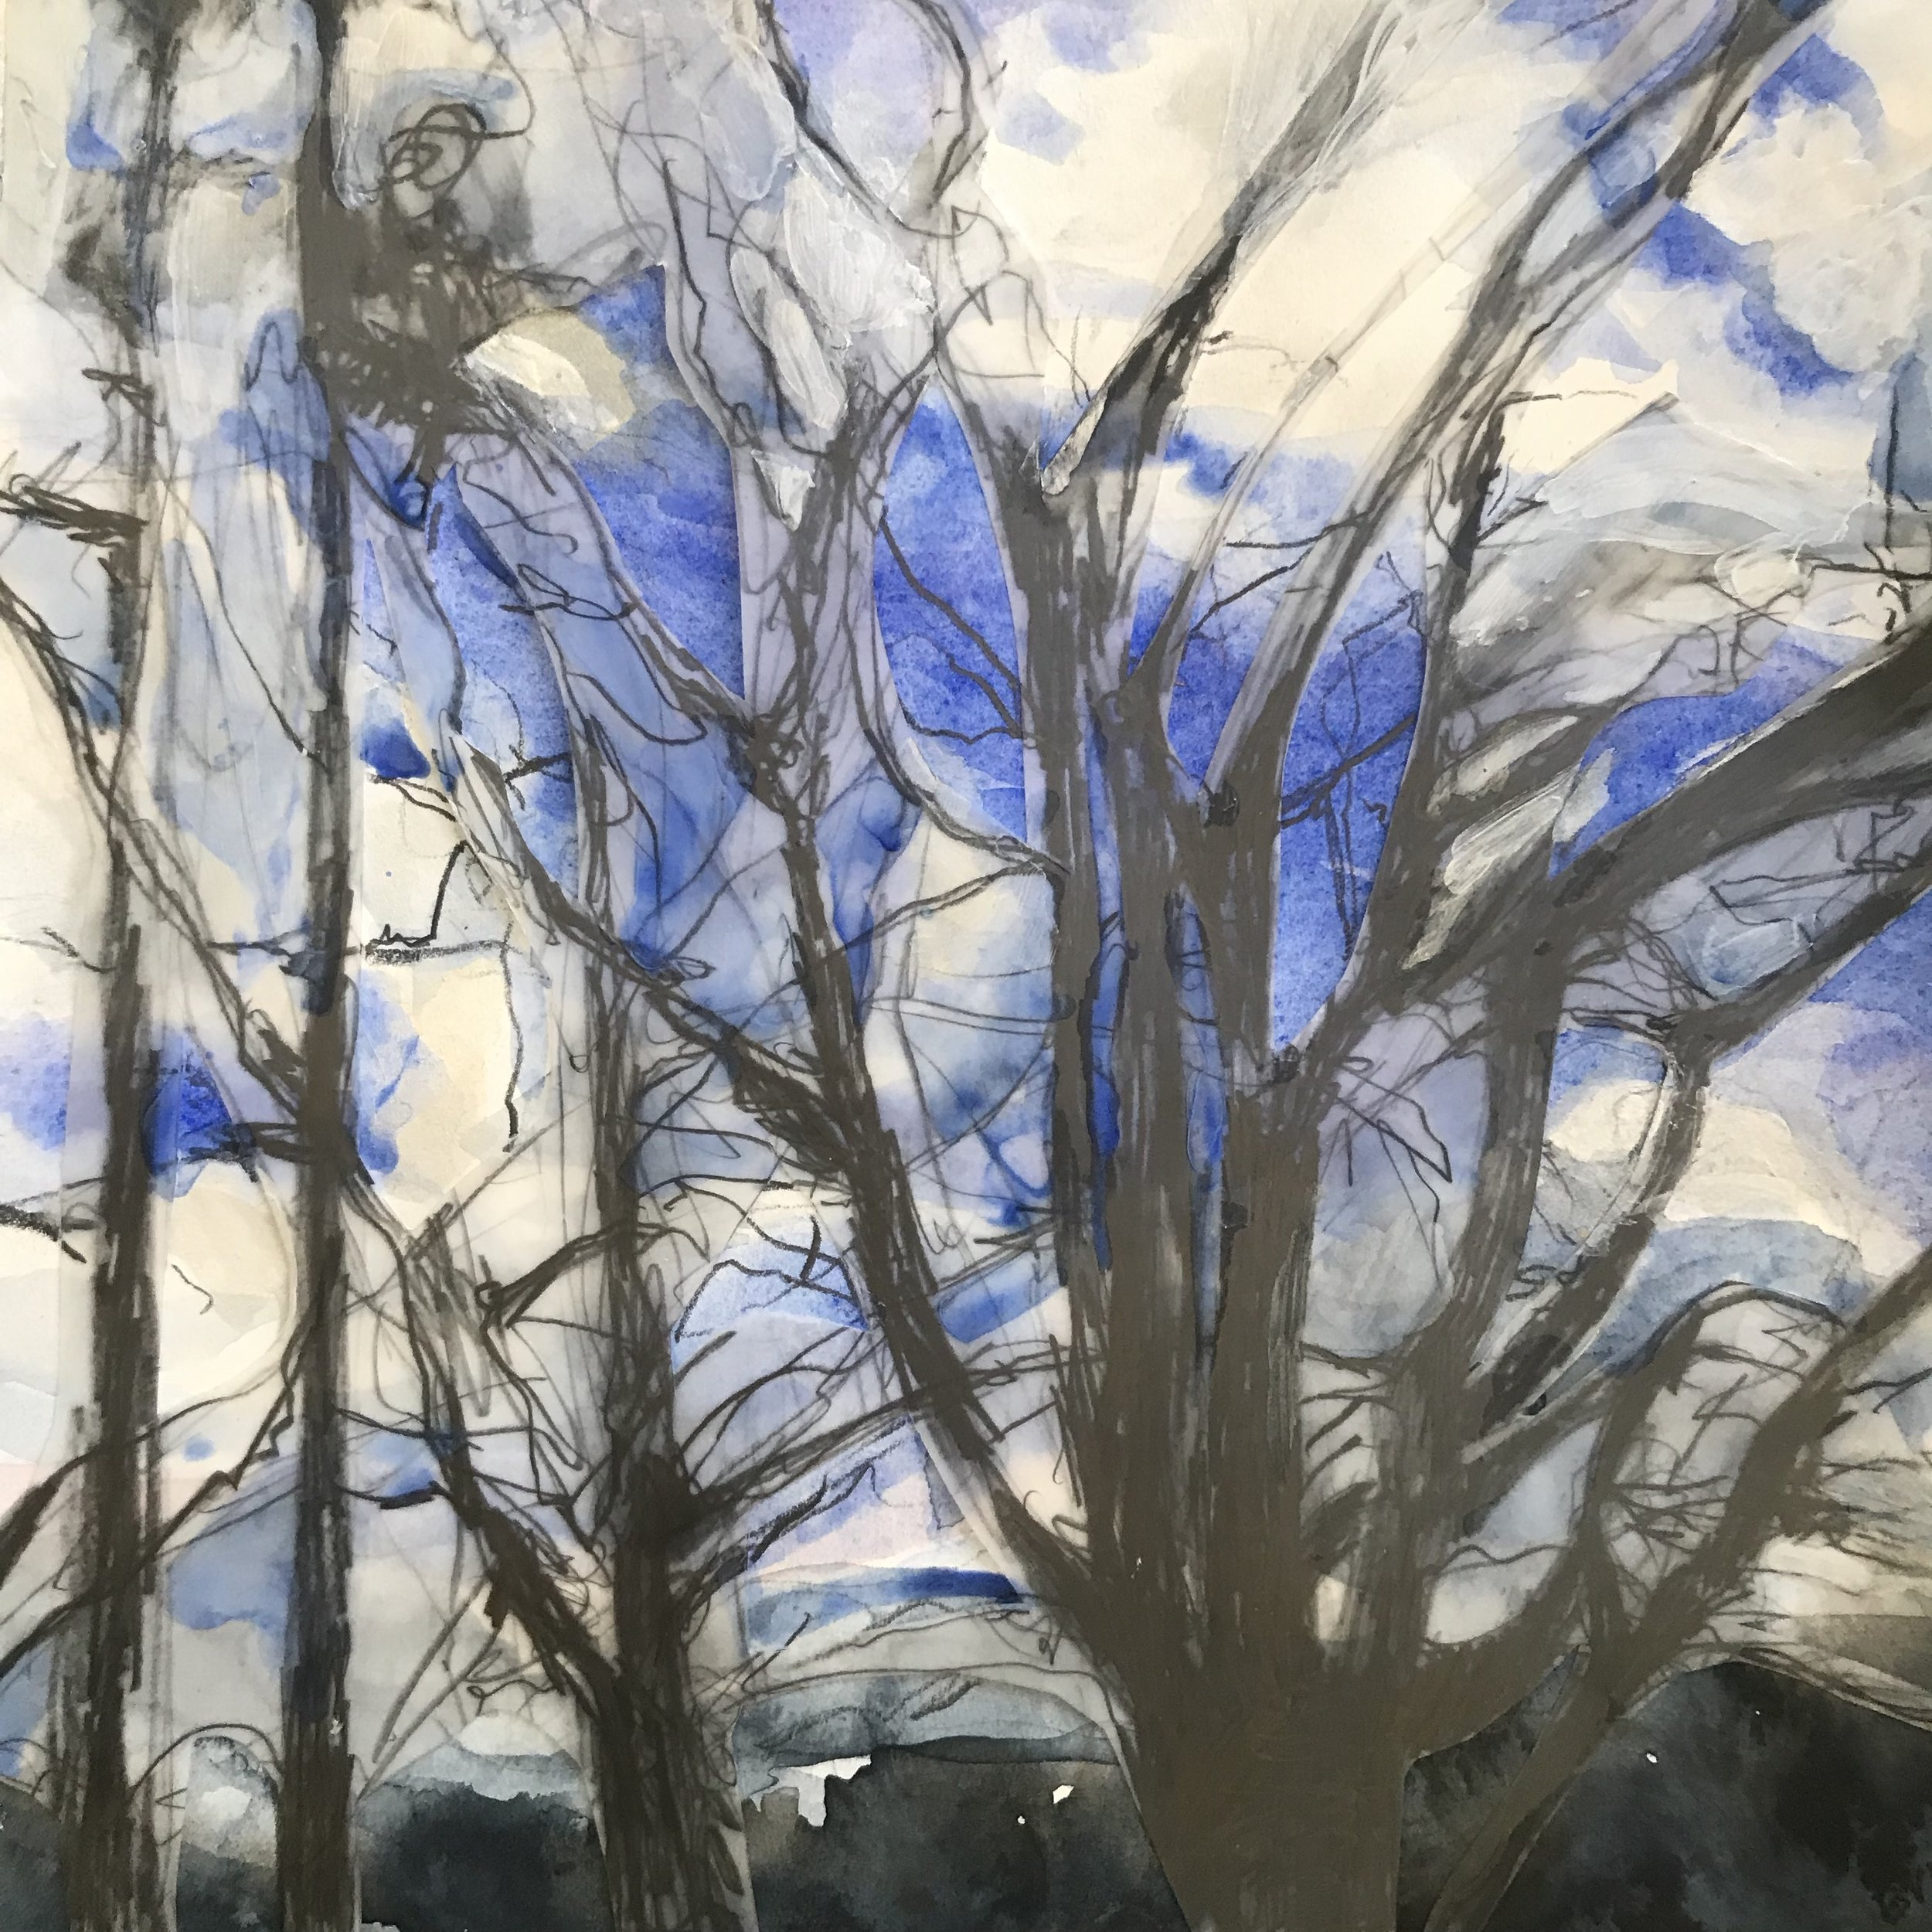 "Trees-sketch-clouds ( Autentico 2019) watercolor, graphite, collage 9"" x 9"" by beth vendryes williams"